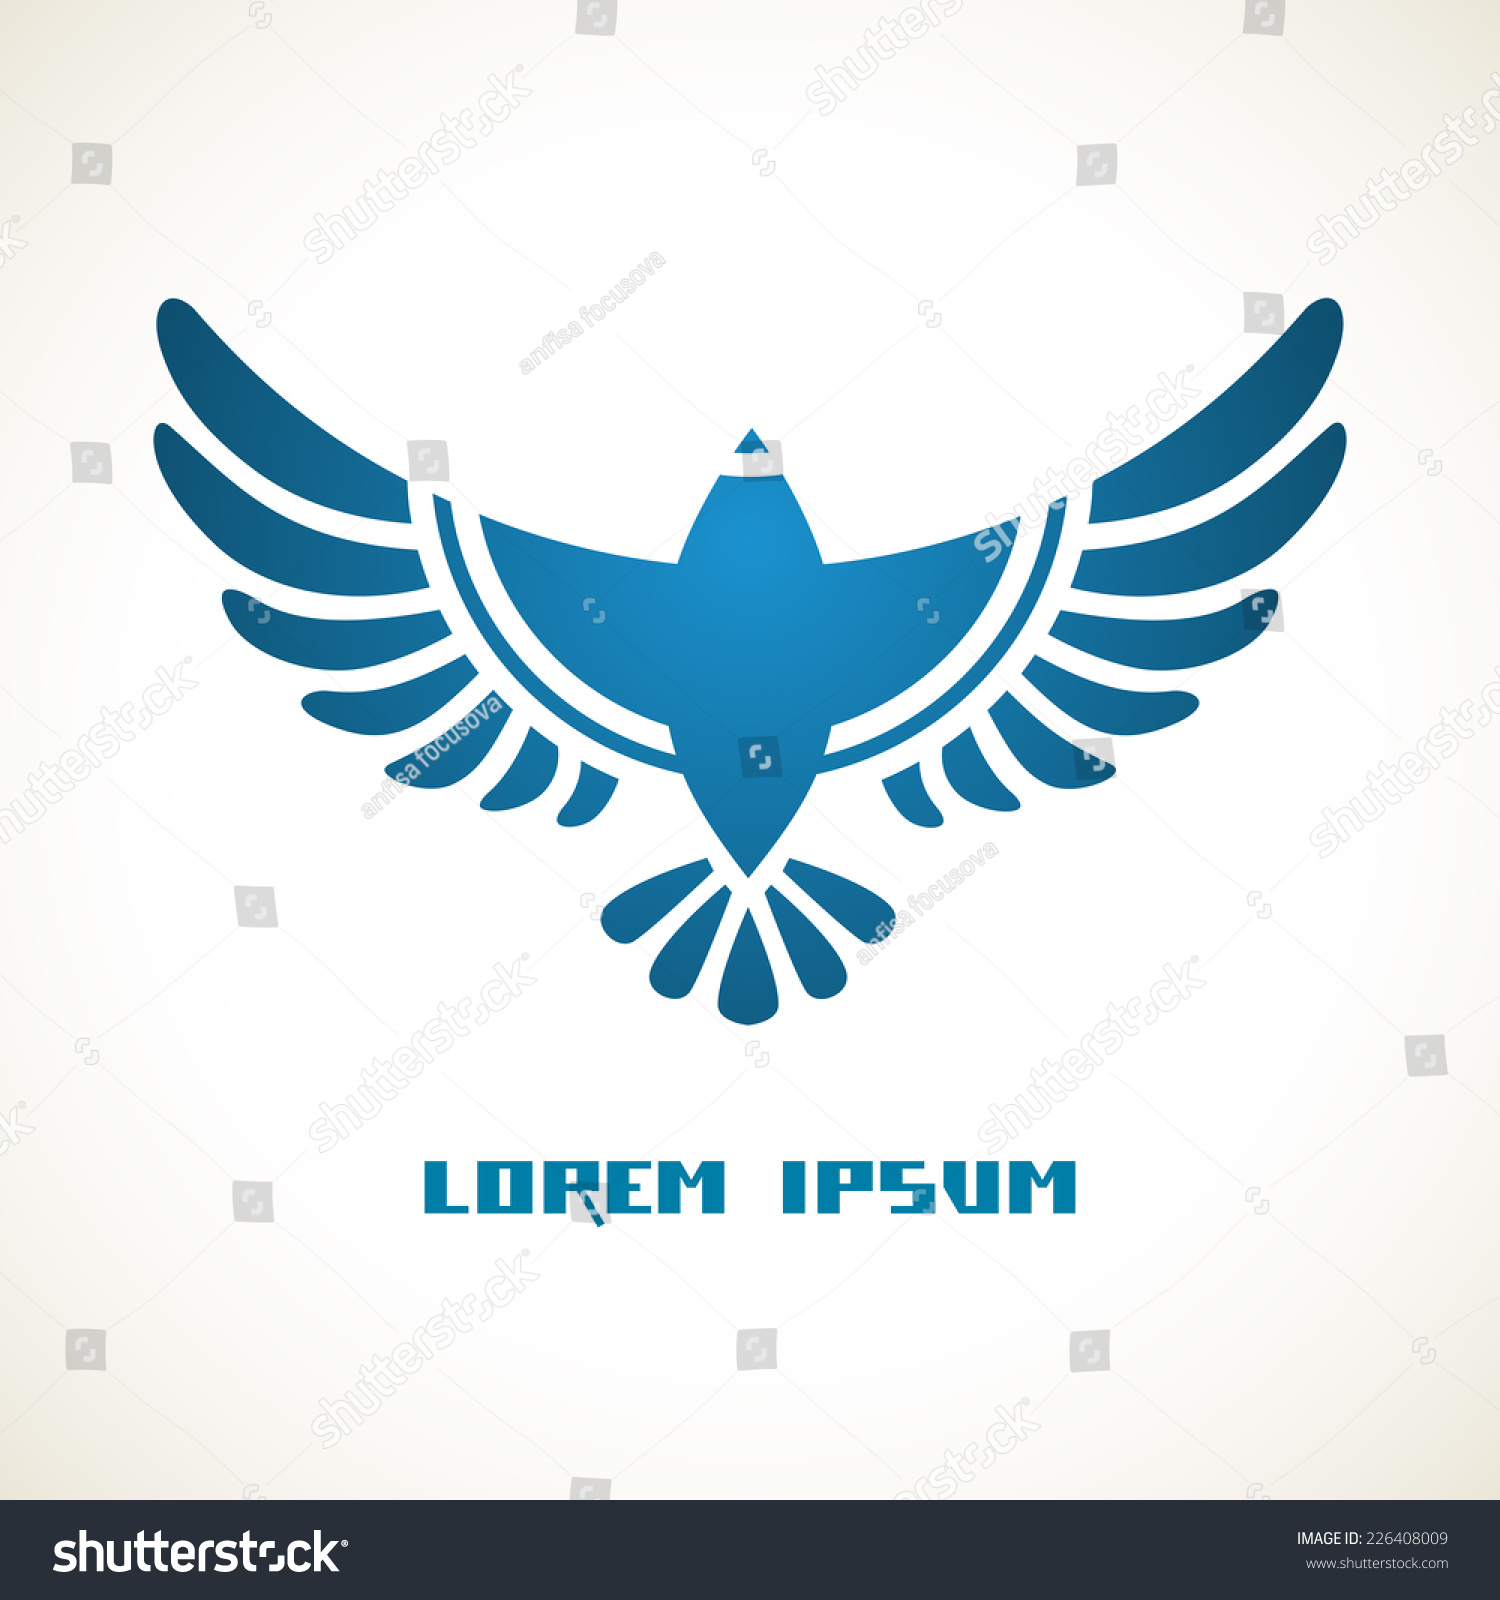 flying bird template printable - vector flying bird icon flat sign stock vector 226408009